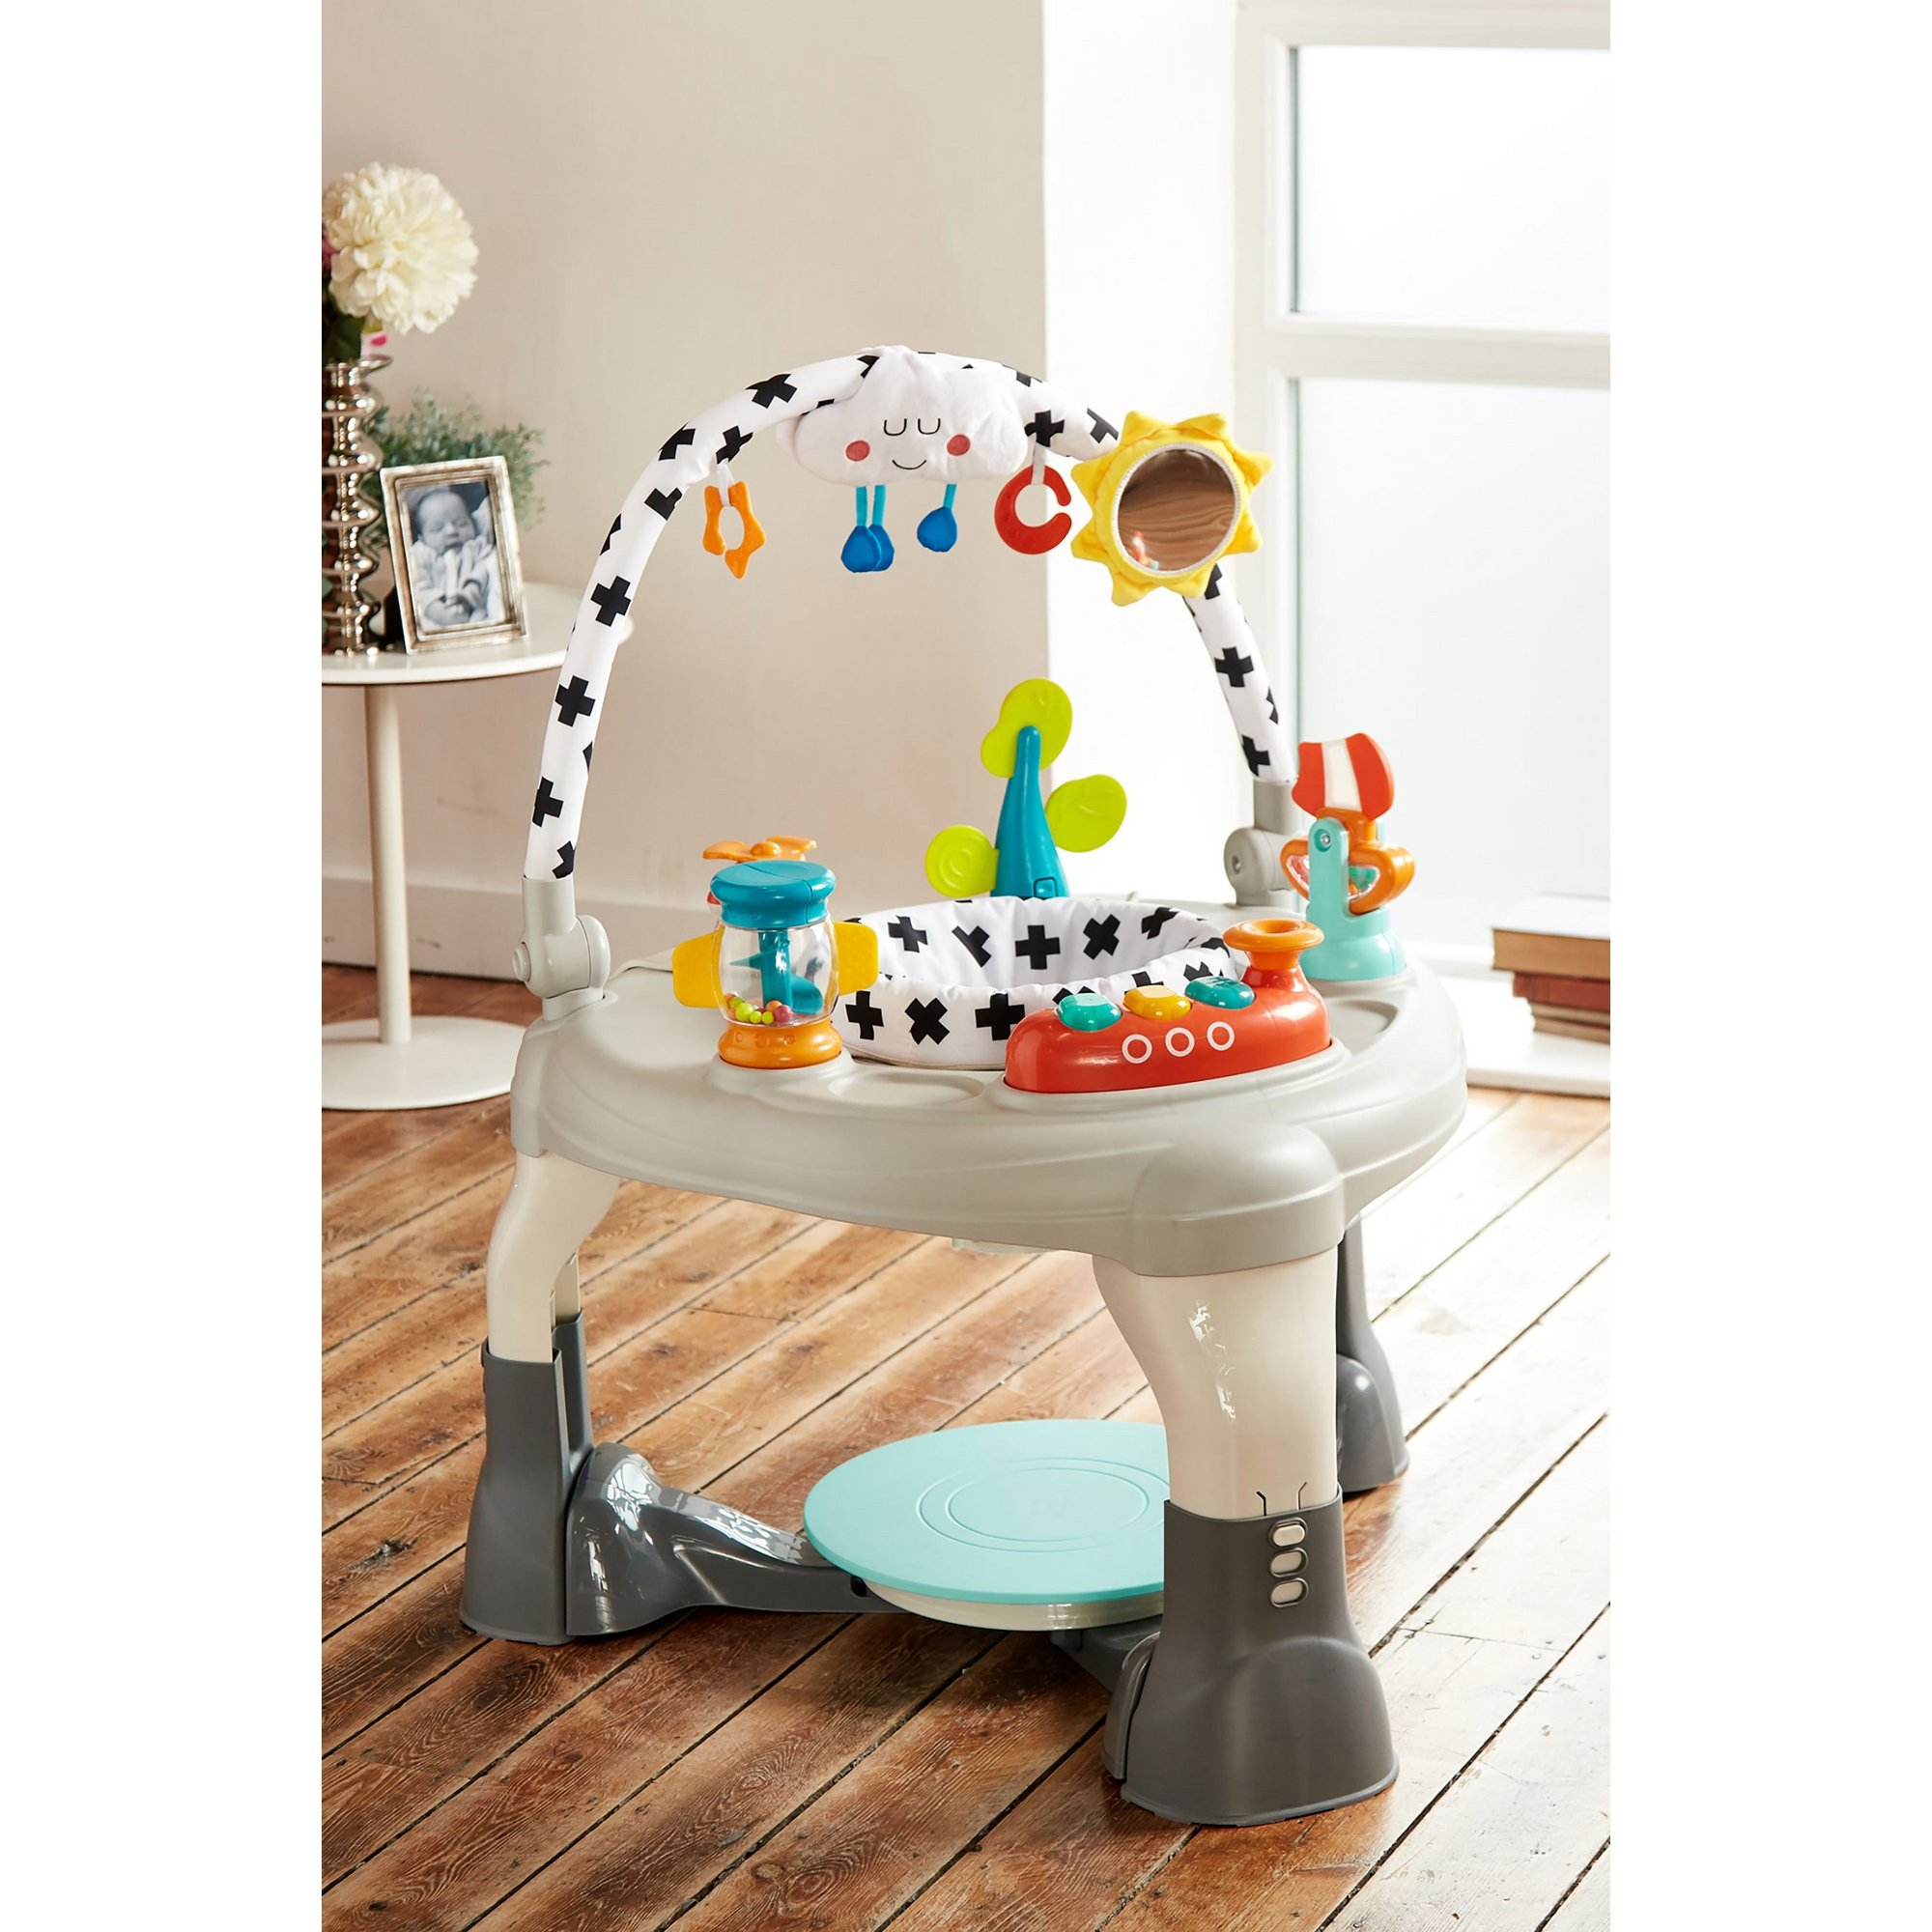 Image of Mychild 3-In-1 Activity Centre Bouncer and Play Table